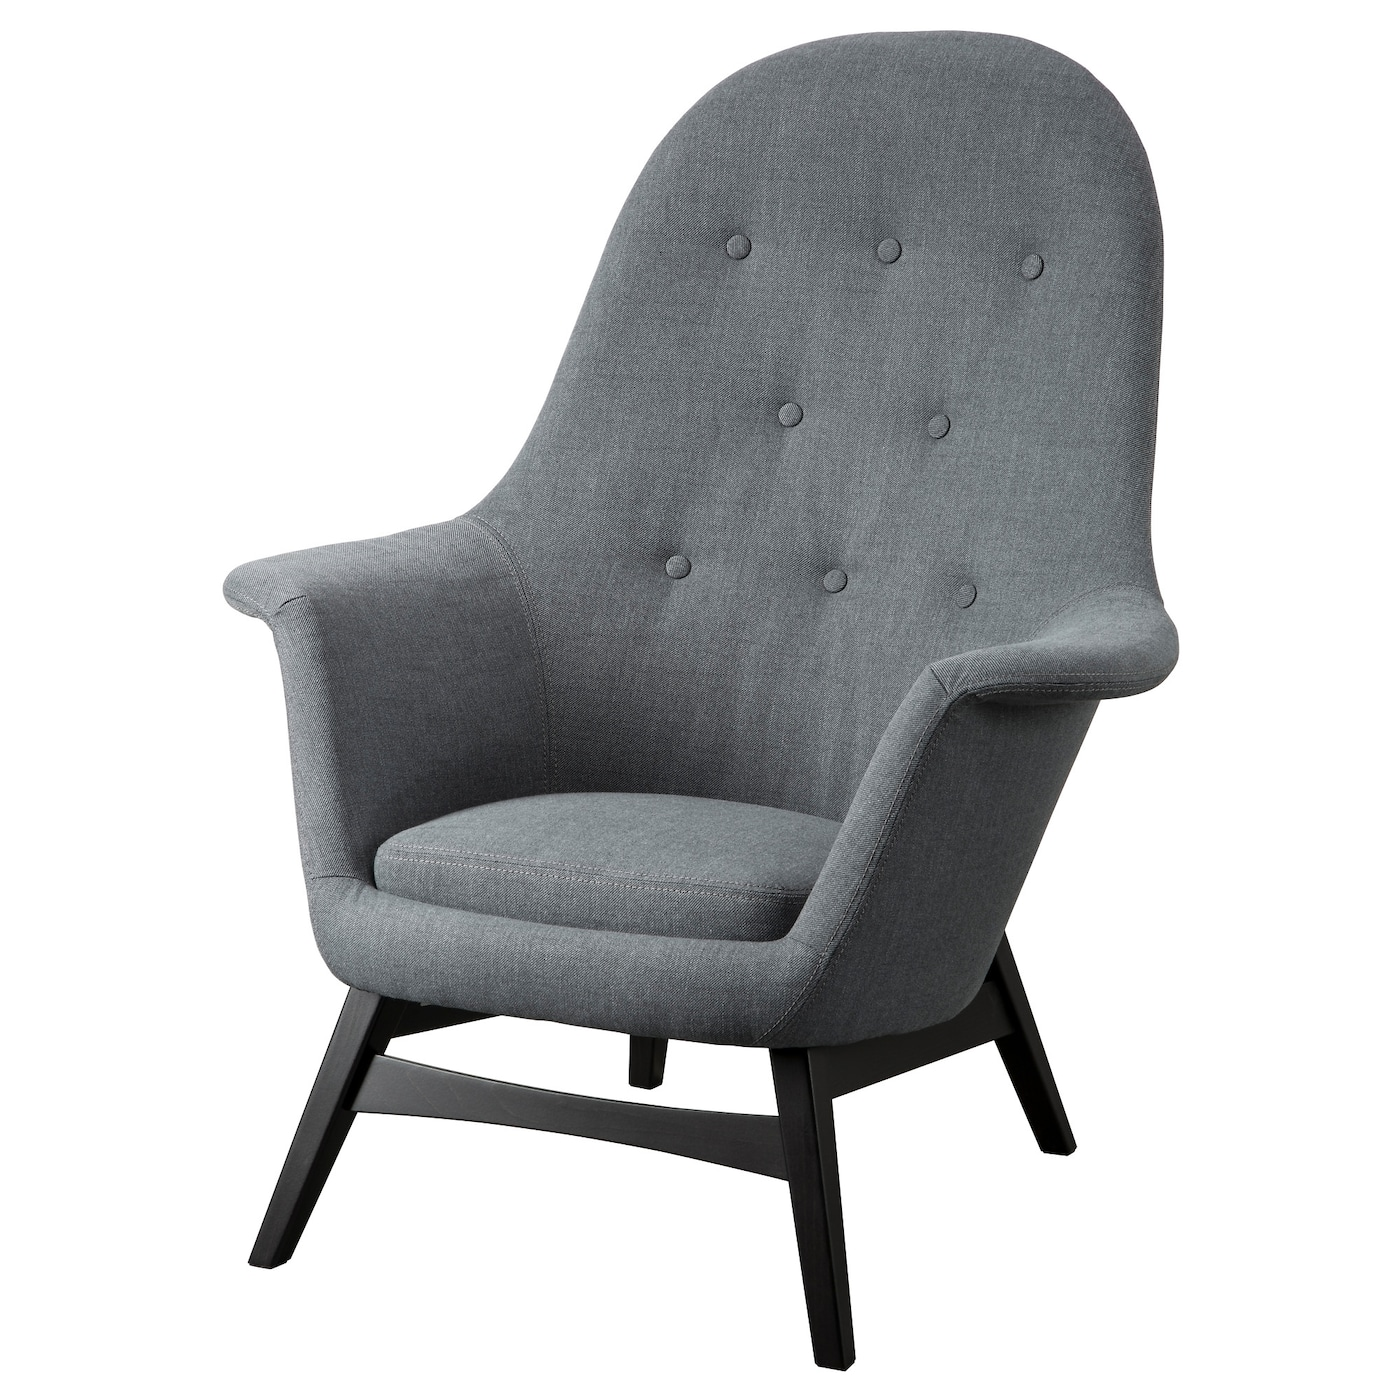 IKEA BENARP armchair The high back gives good support for your neck and head.